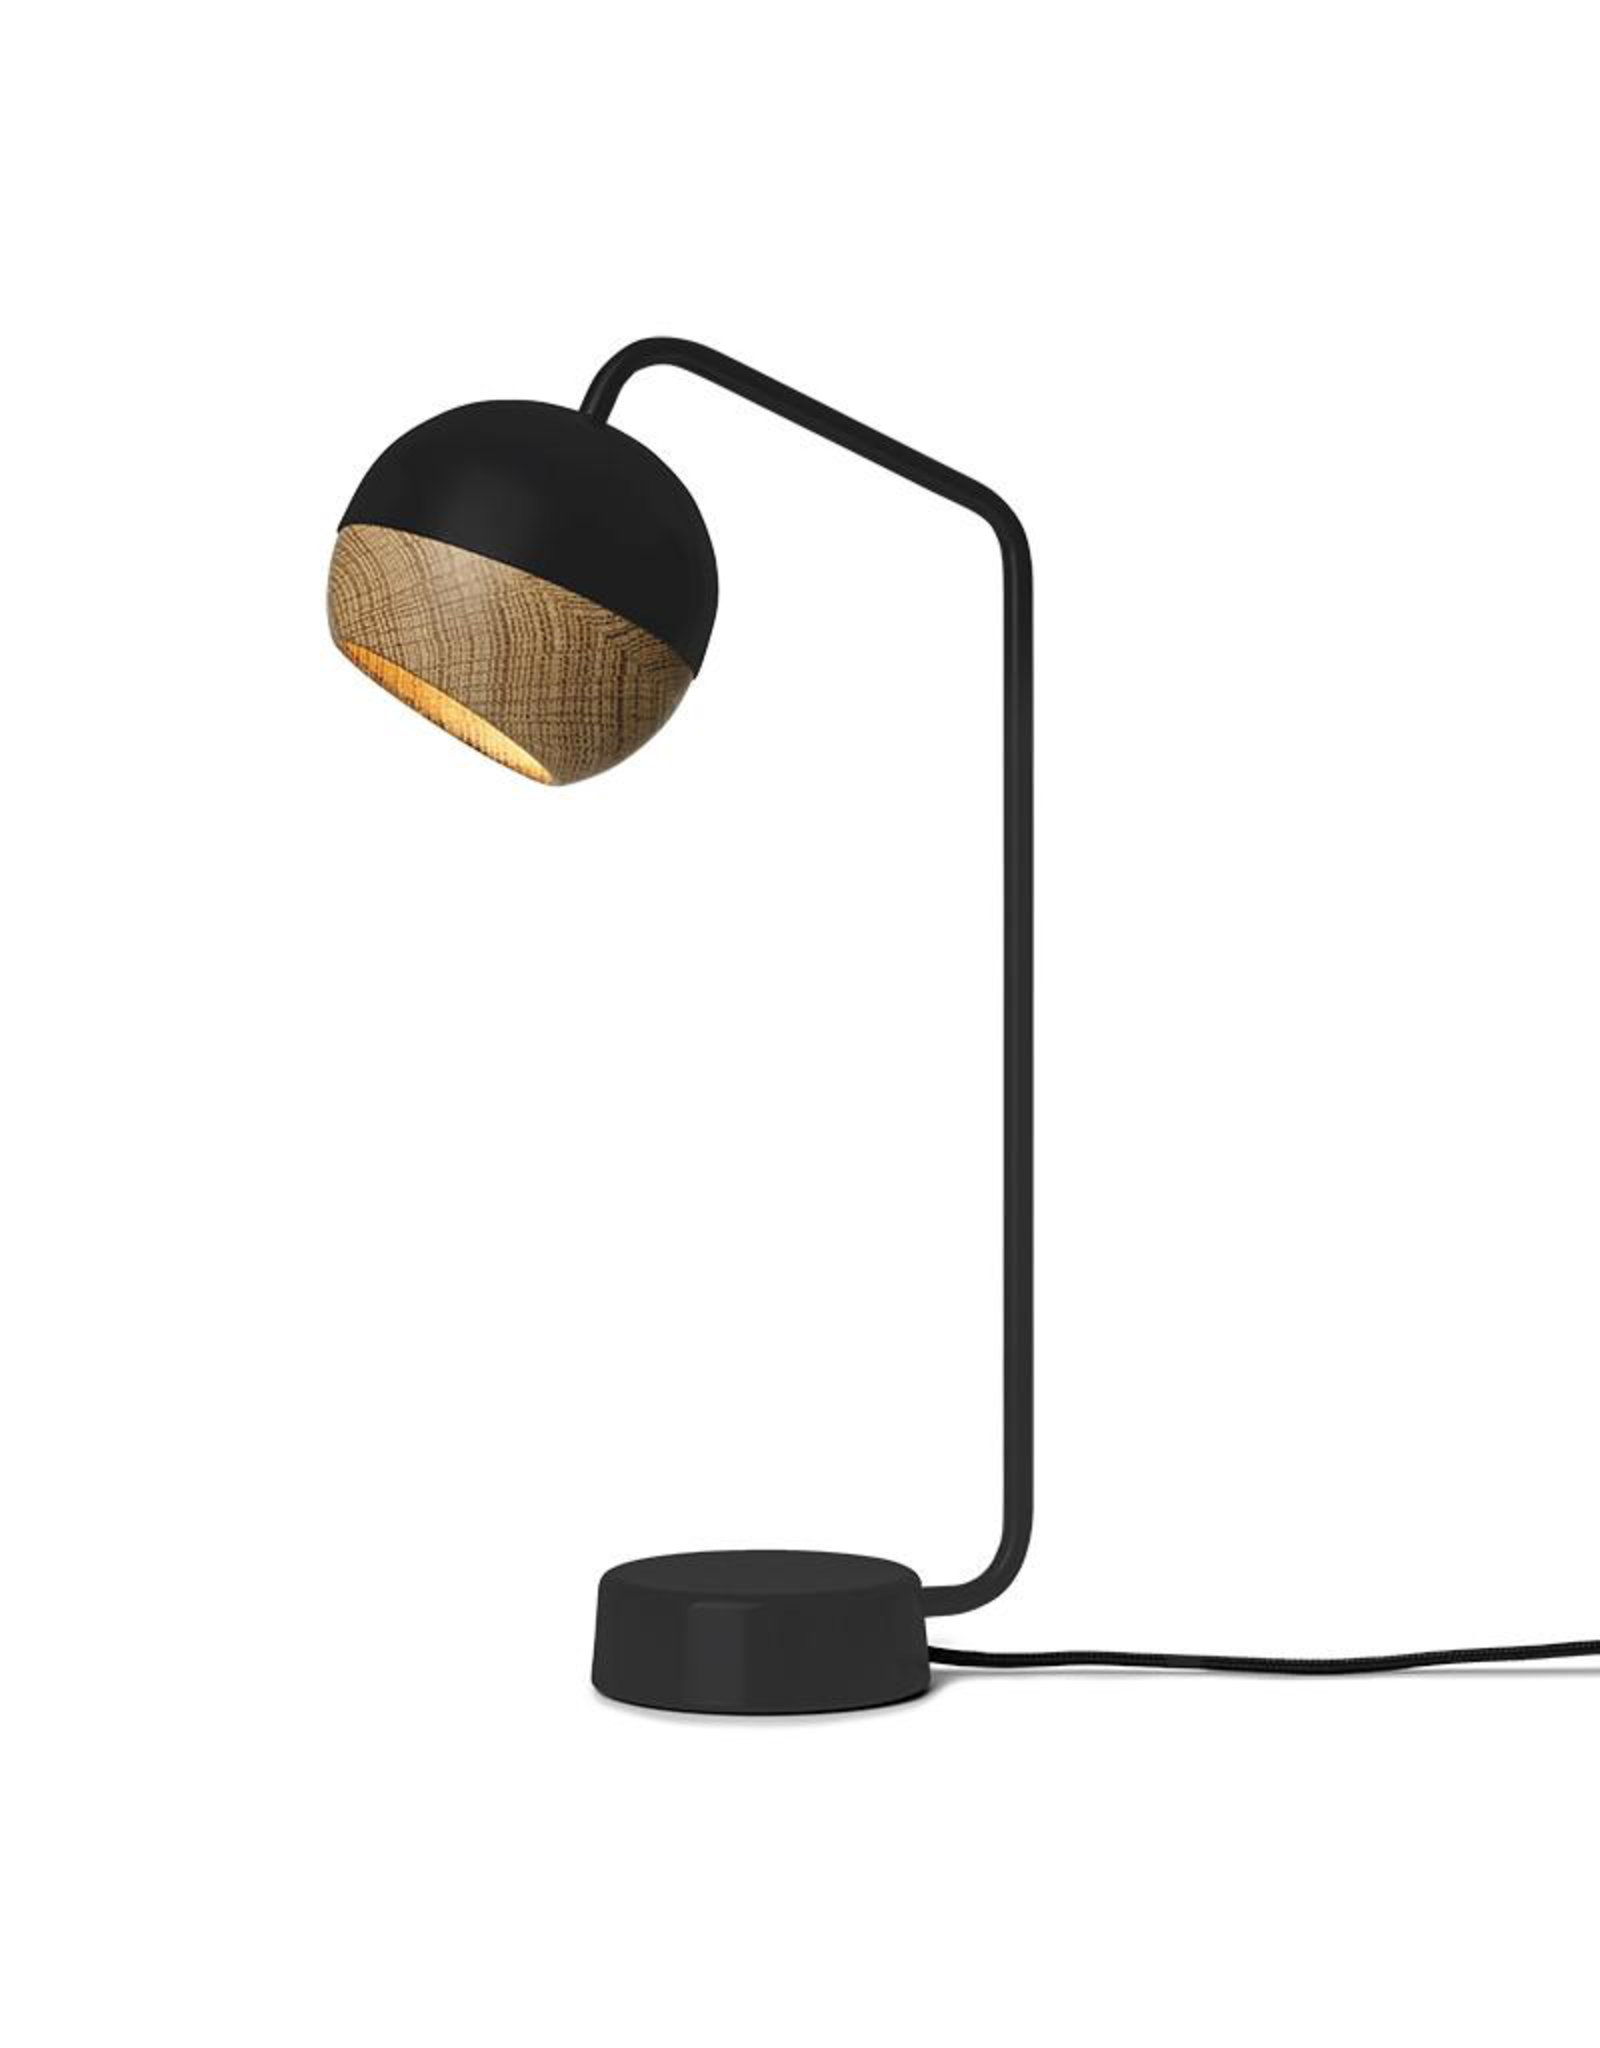 MATER RAY TABLE LAMP IN BLACK